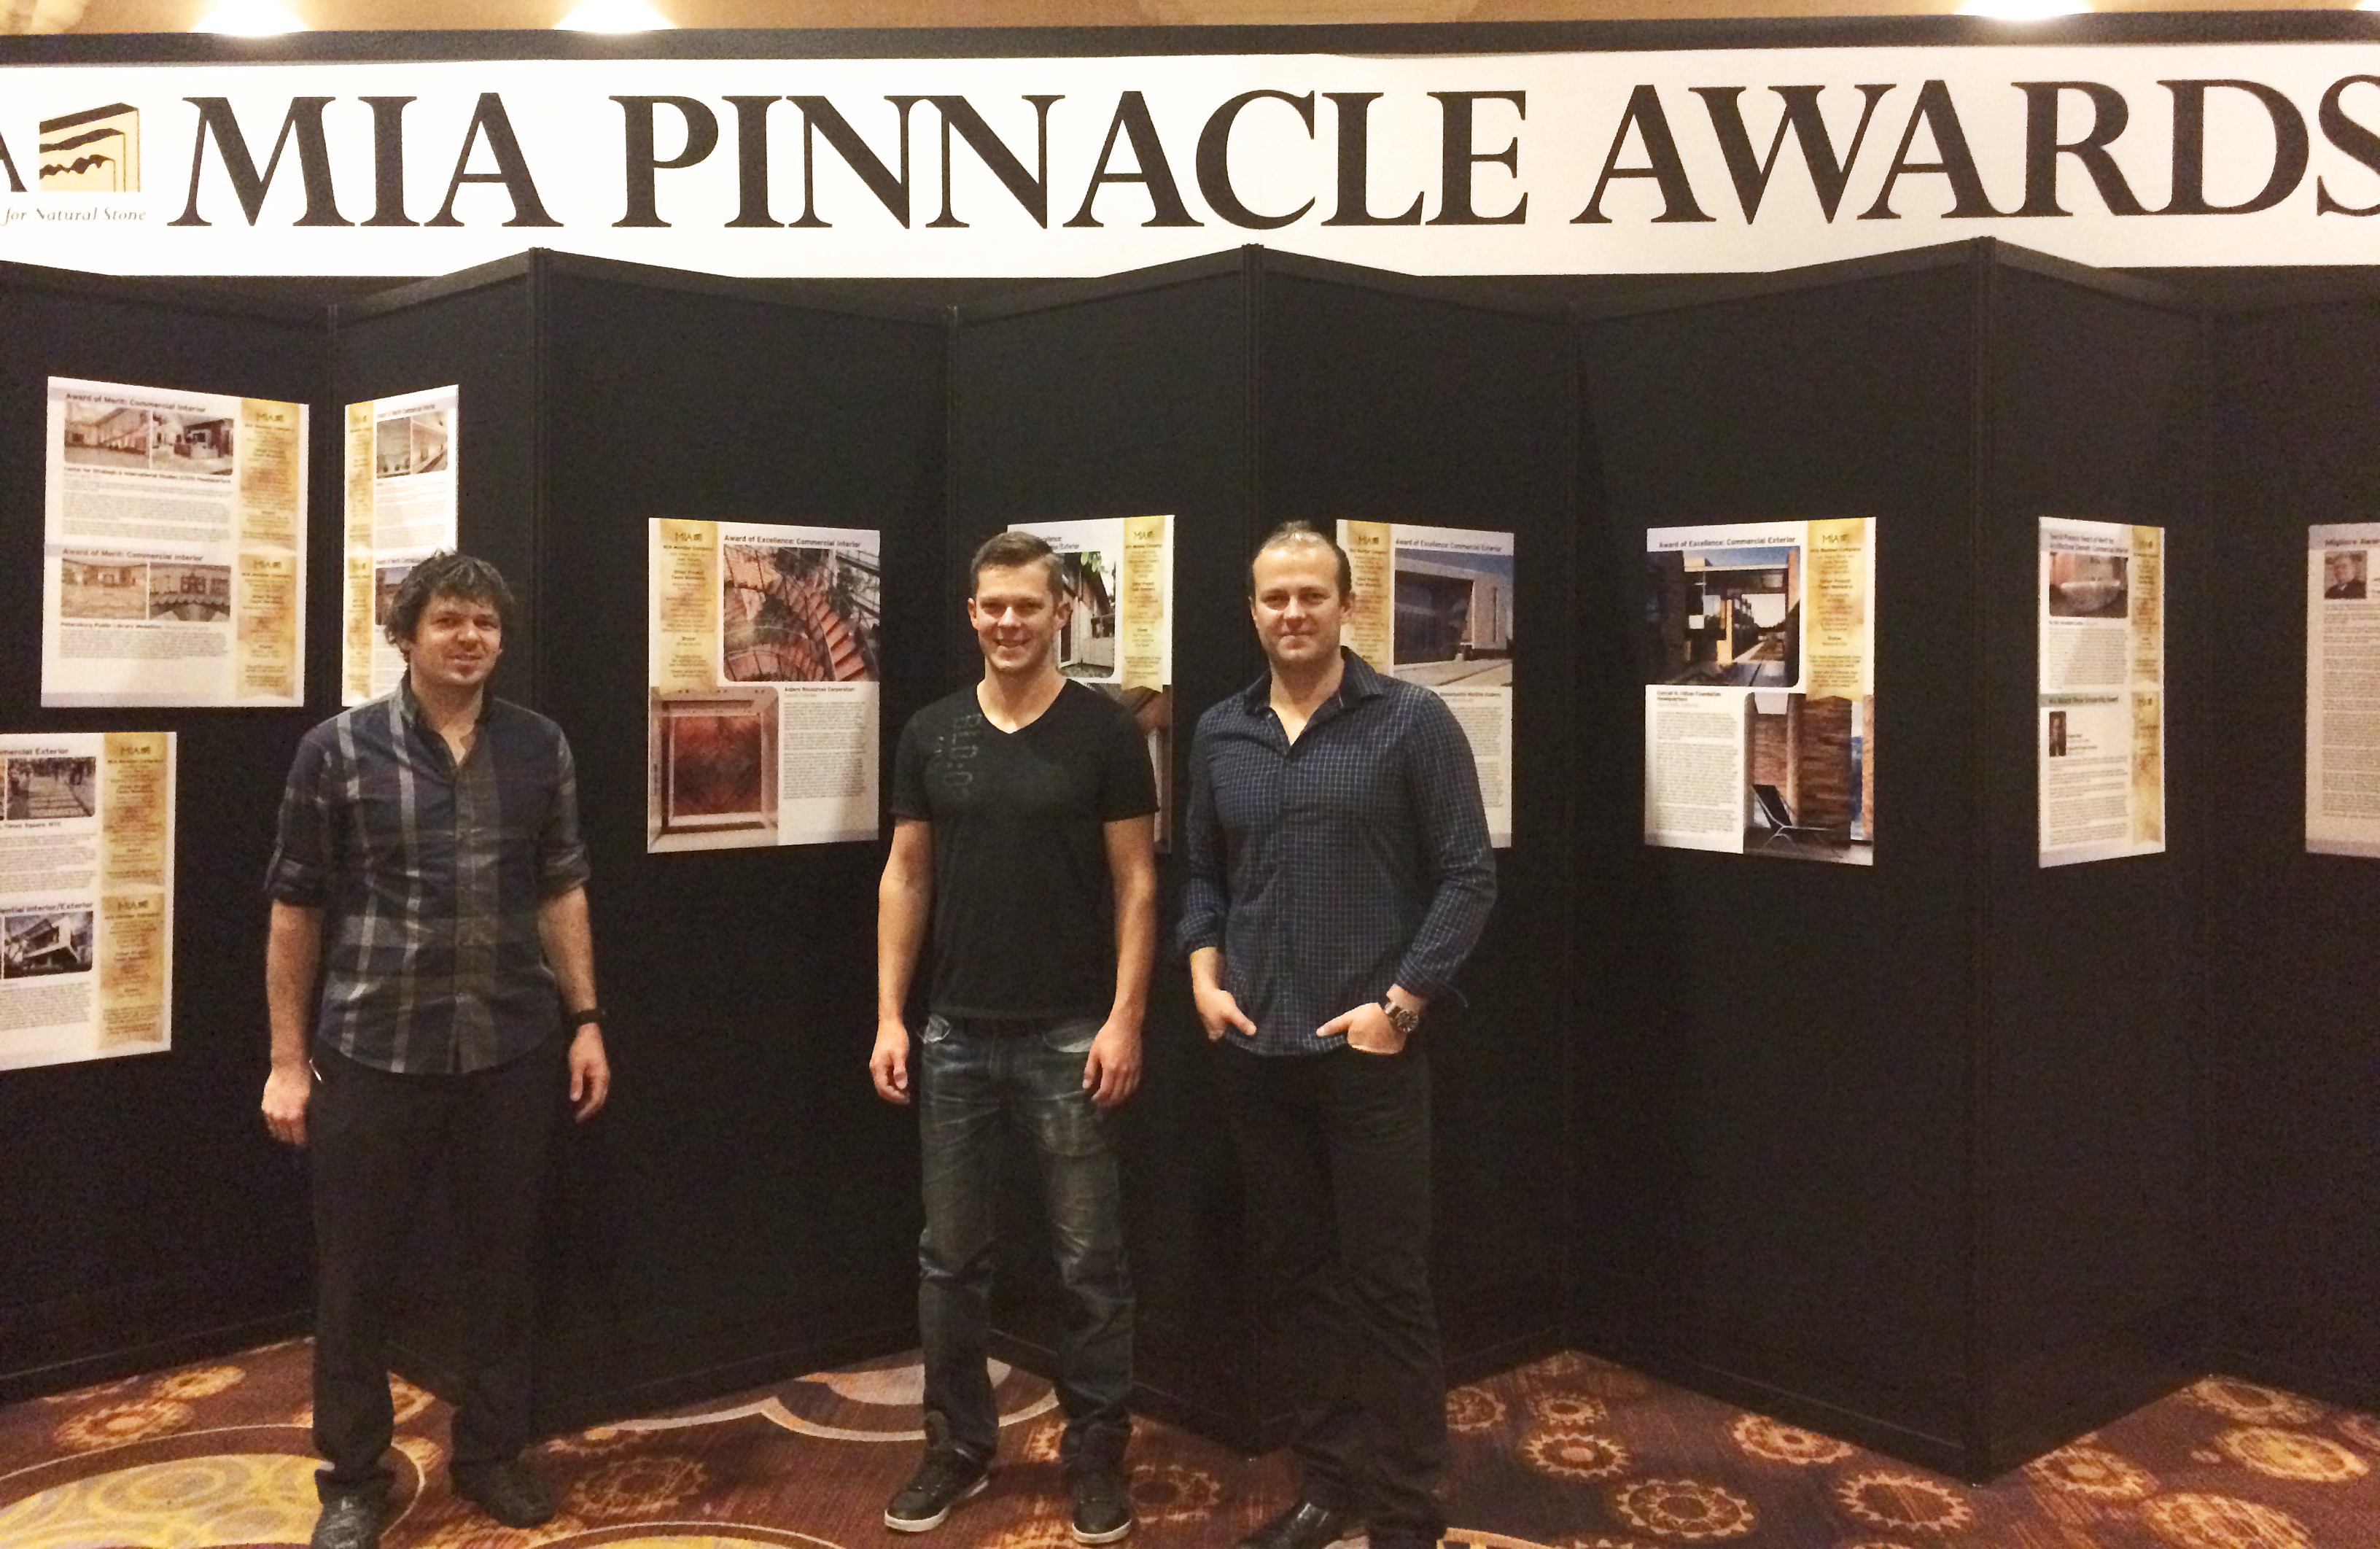 MIA Pinnacle Awards 2015